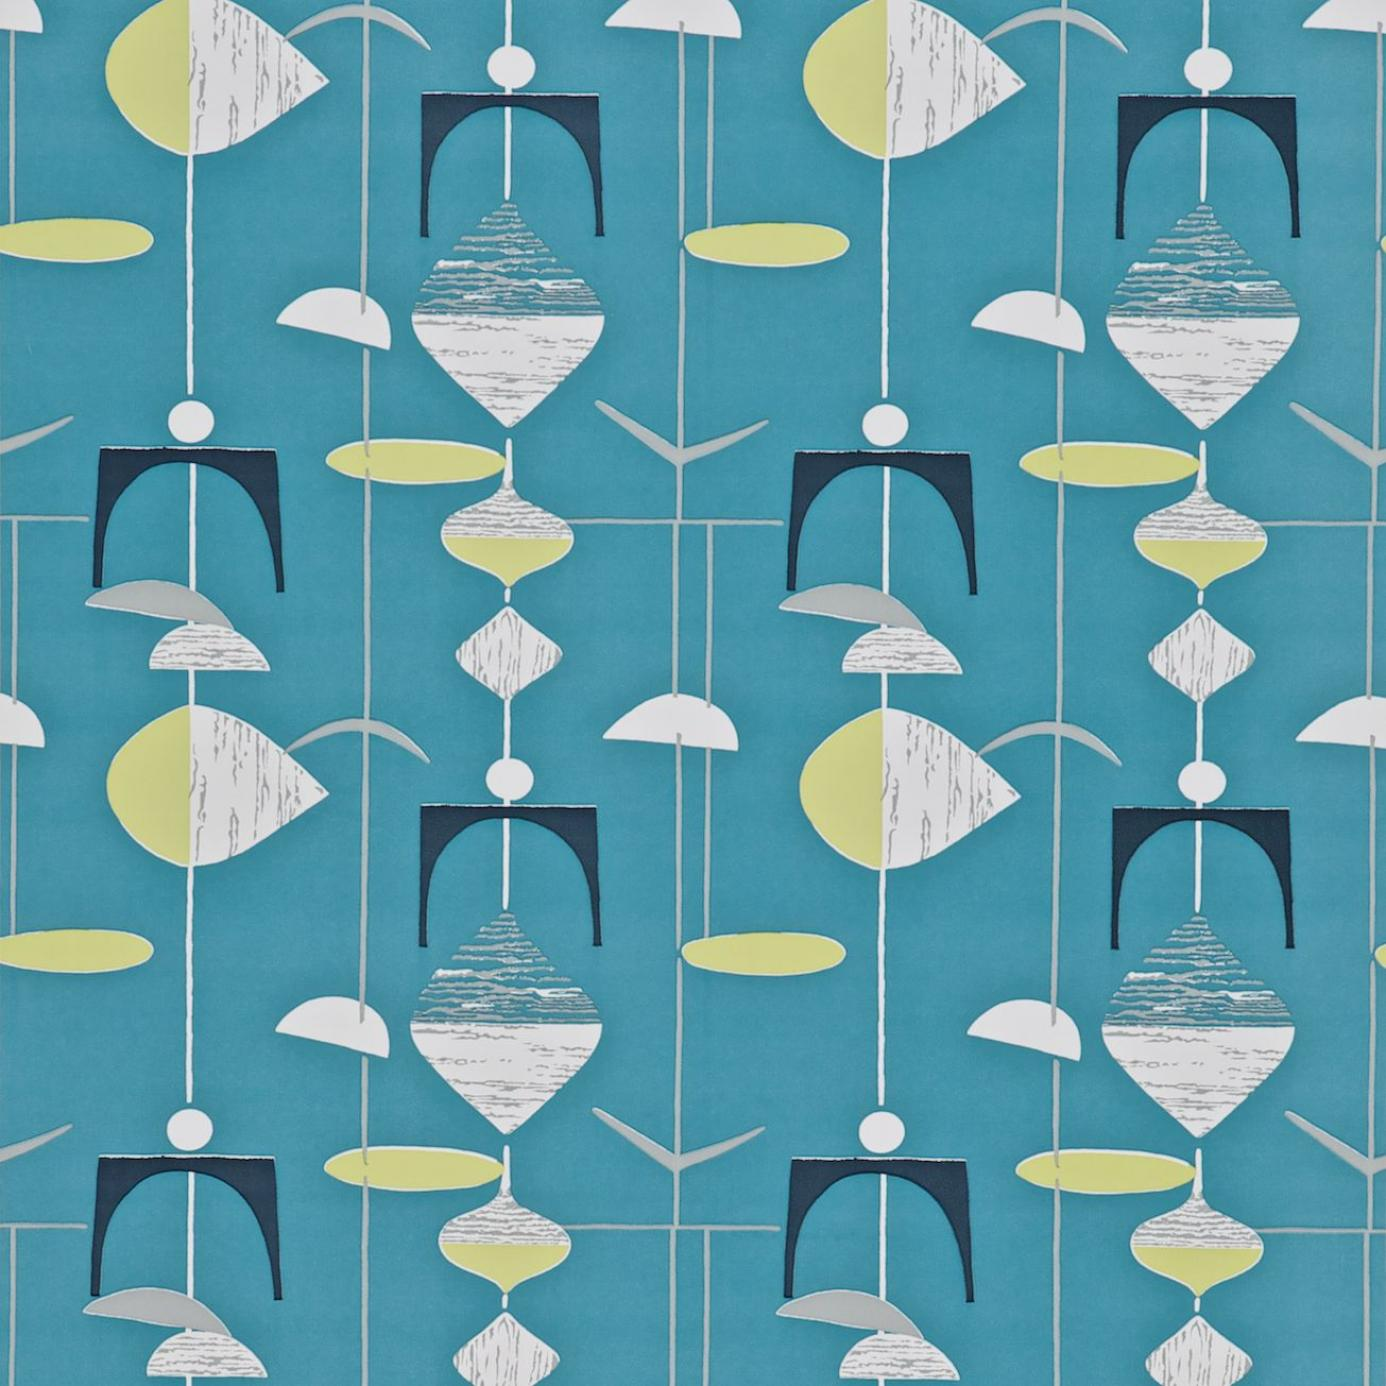 Free Download 50s Retro Wallpaper Sanderson 50s Wallpapers